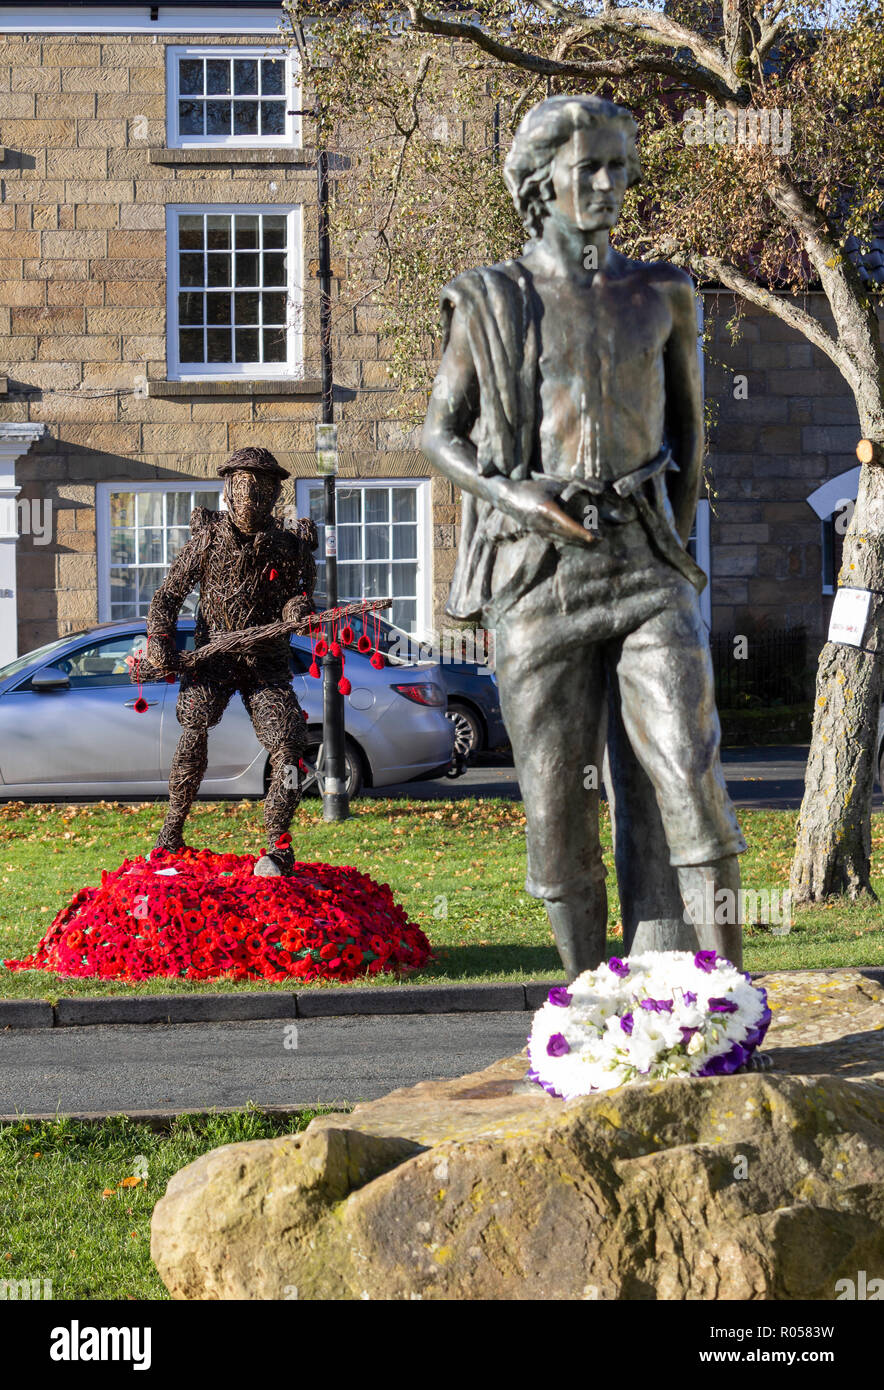 Great Ayton village,The North York Moors National Park, North Yorkshire, England, United Kingdom. 2nd November 2018. Knitted poppies around Willow sculpture of First World War soldier in Grear Ayton village, North Yorkshire on a clear and frosty morning. The sculpture is in remembrance to the men and women of the village who served during The Great War. Off the 260 who went off to war, only 50 returned. Great Ayton was the childhood home of Captain James Cook. Sculpture in foreground is a young James Cook. Credit: ALAN DAWSON/Alamy Live News - Stock Image